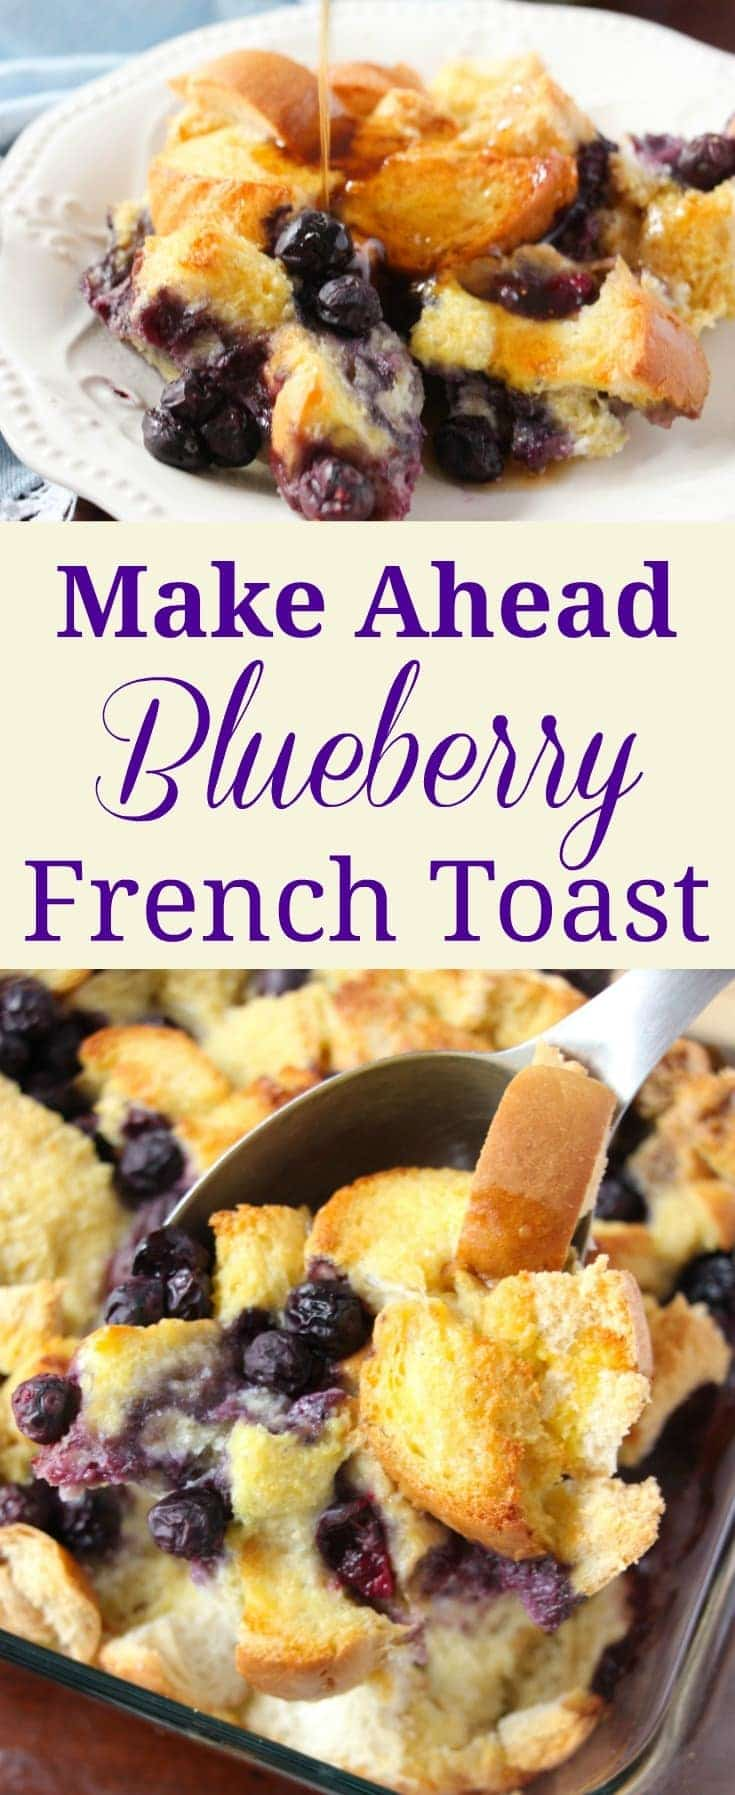 Make ahead breakfast casserole blueberry french toast how to make blueberry french toast ccuart Gallery